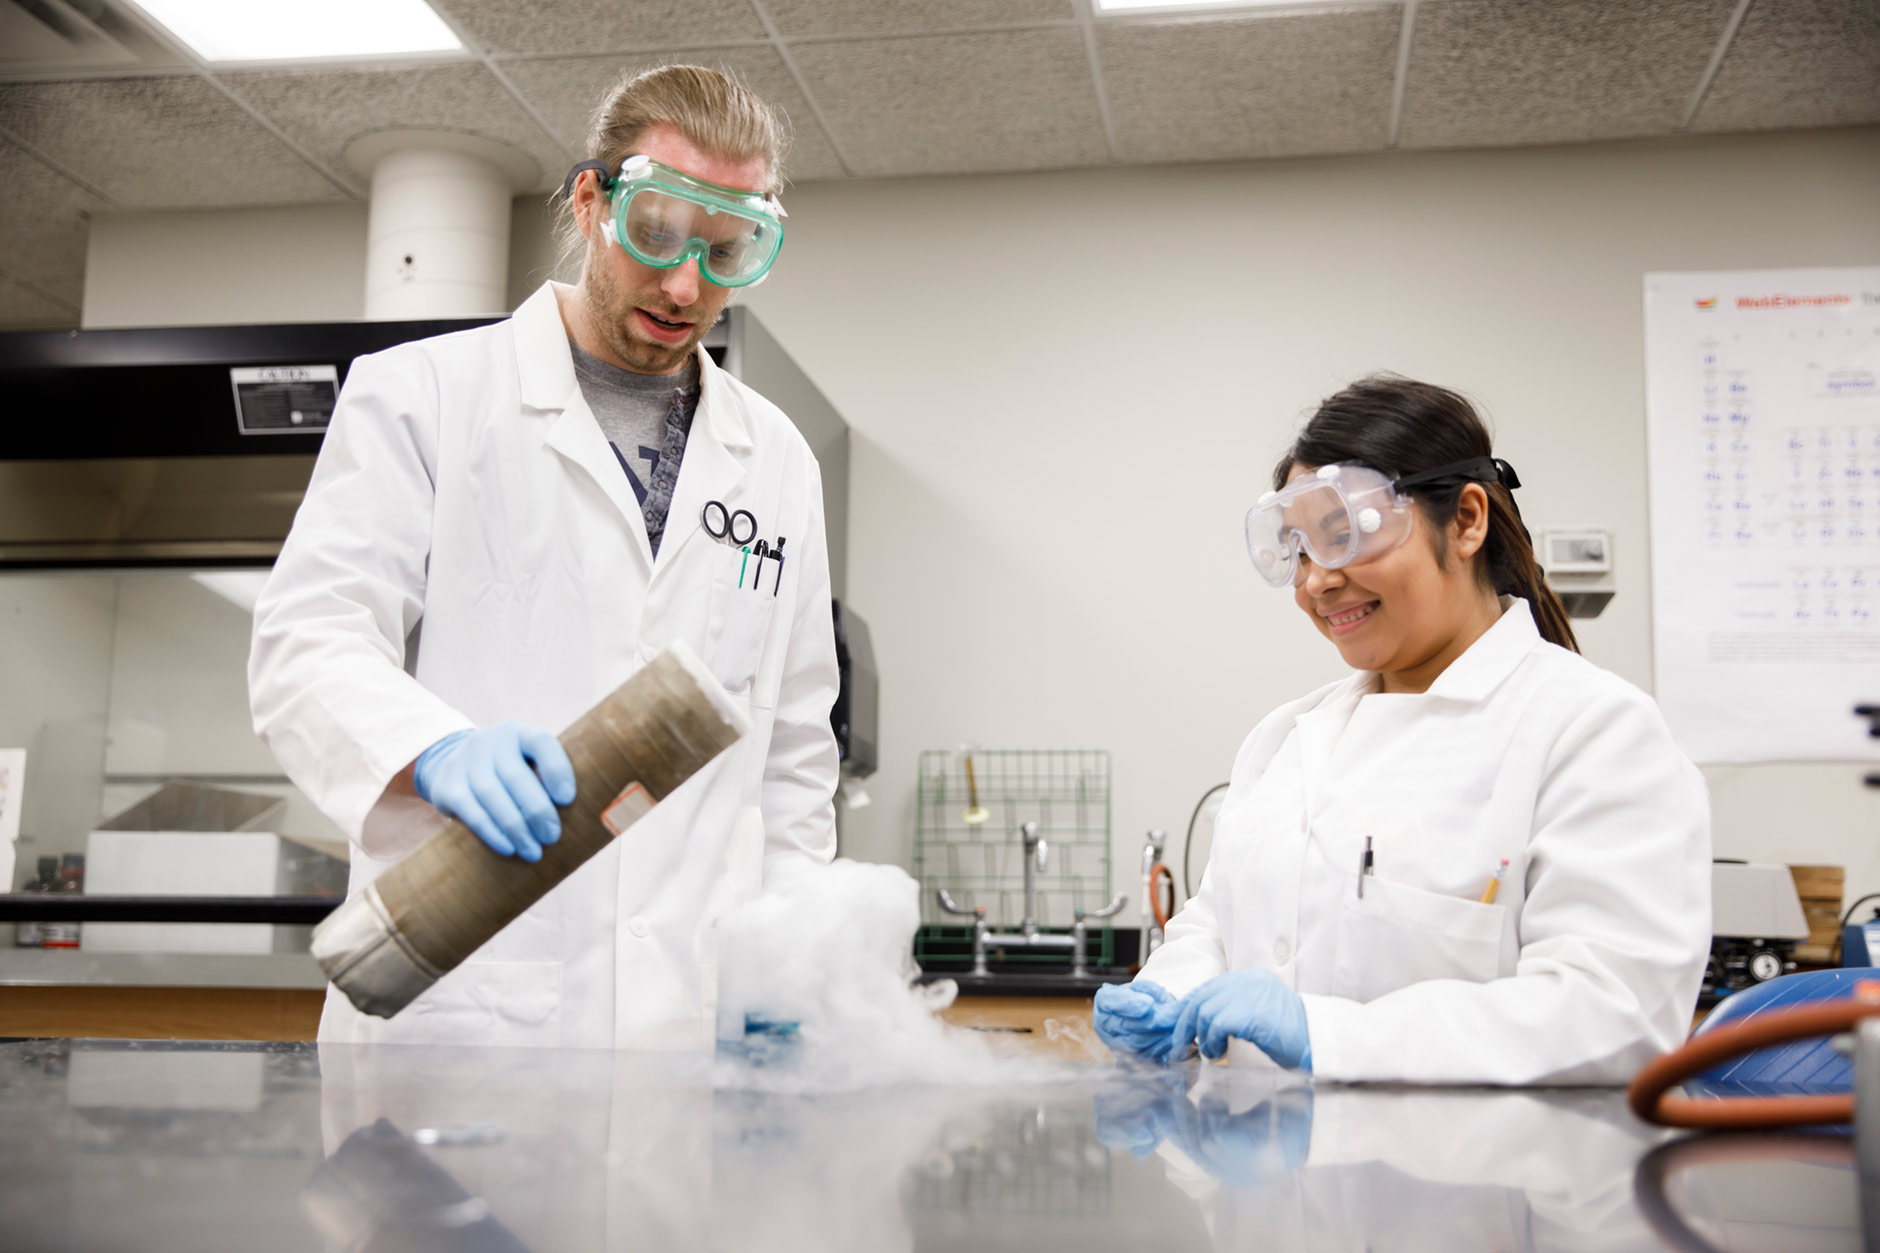 Indiana University Northwest Assistant Professor of Chemistry Ian Taschner, left, works with Gabriela Jaimes, a graduating senior, on an experiment in a lab on Tuesday, March 20, 2018. (James Brosher/IU Communications)